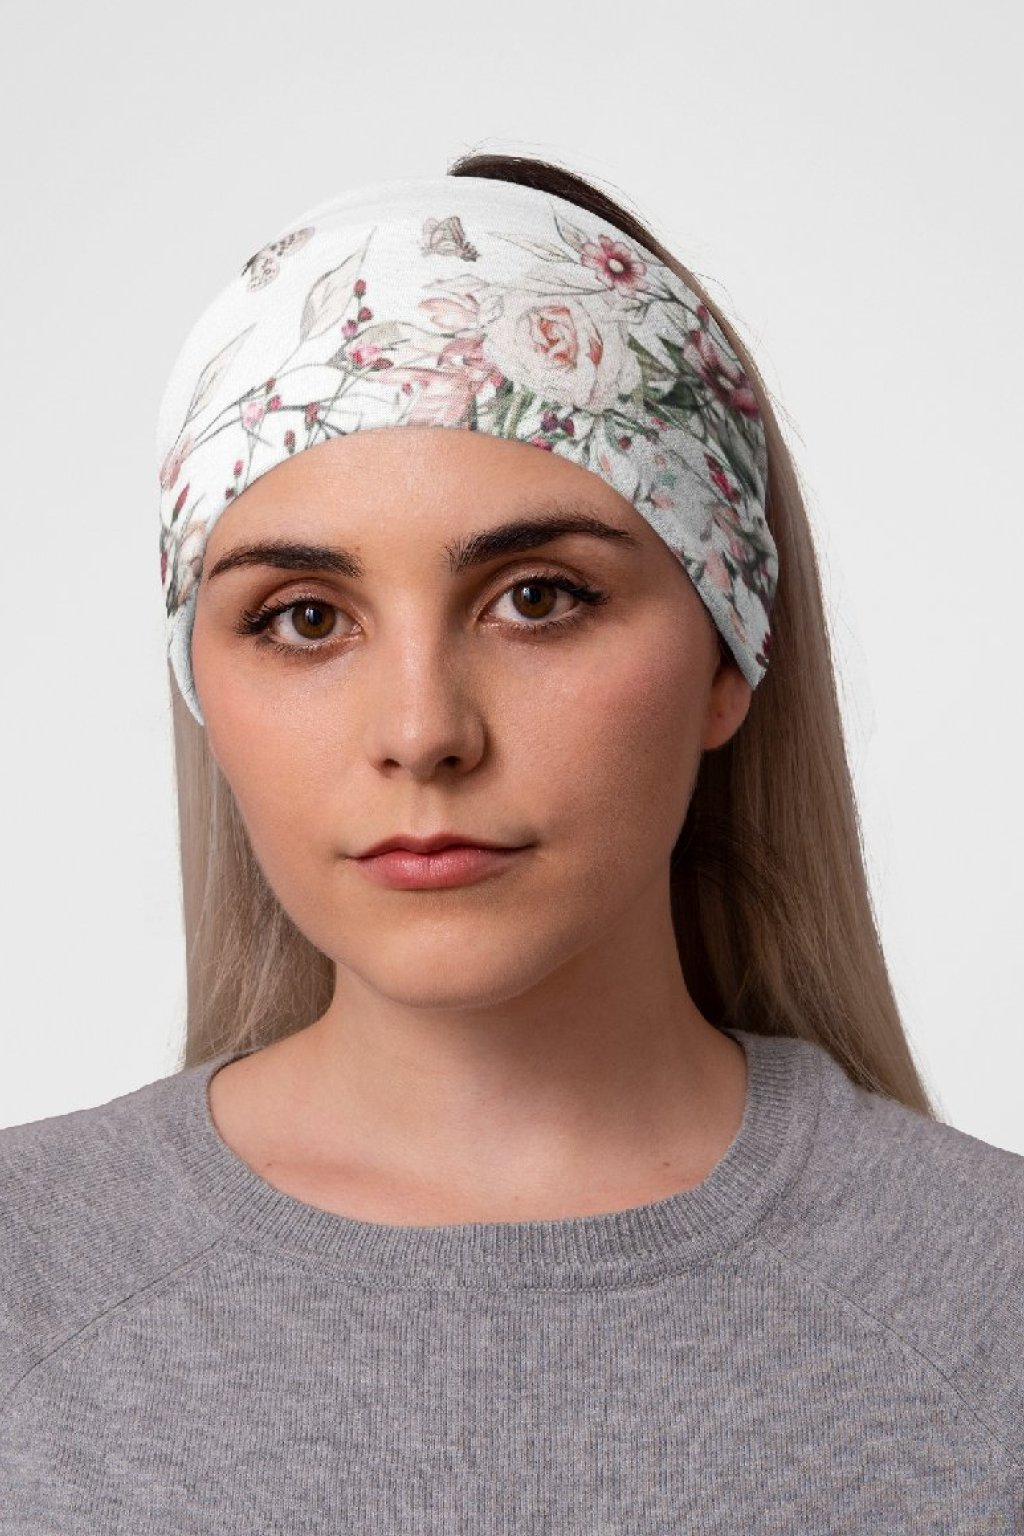 mockup of a woman at a studio with a tubular bandana on her head 36078 (9)